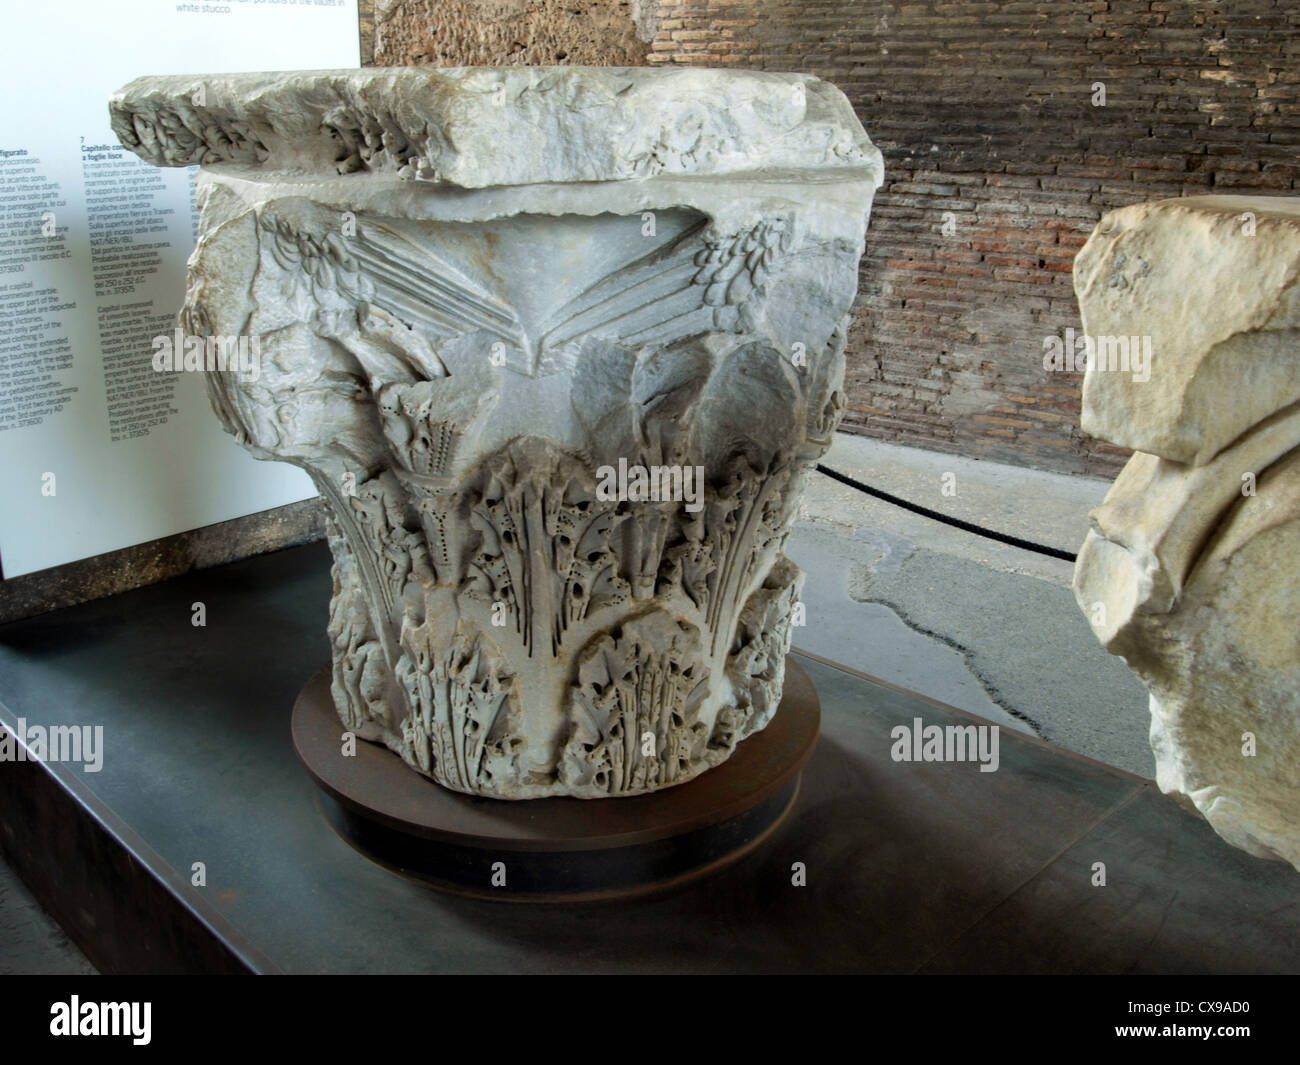 Interior of the Colosseum, Figured capital in Proconnesian marble. Stock Photo